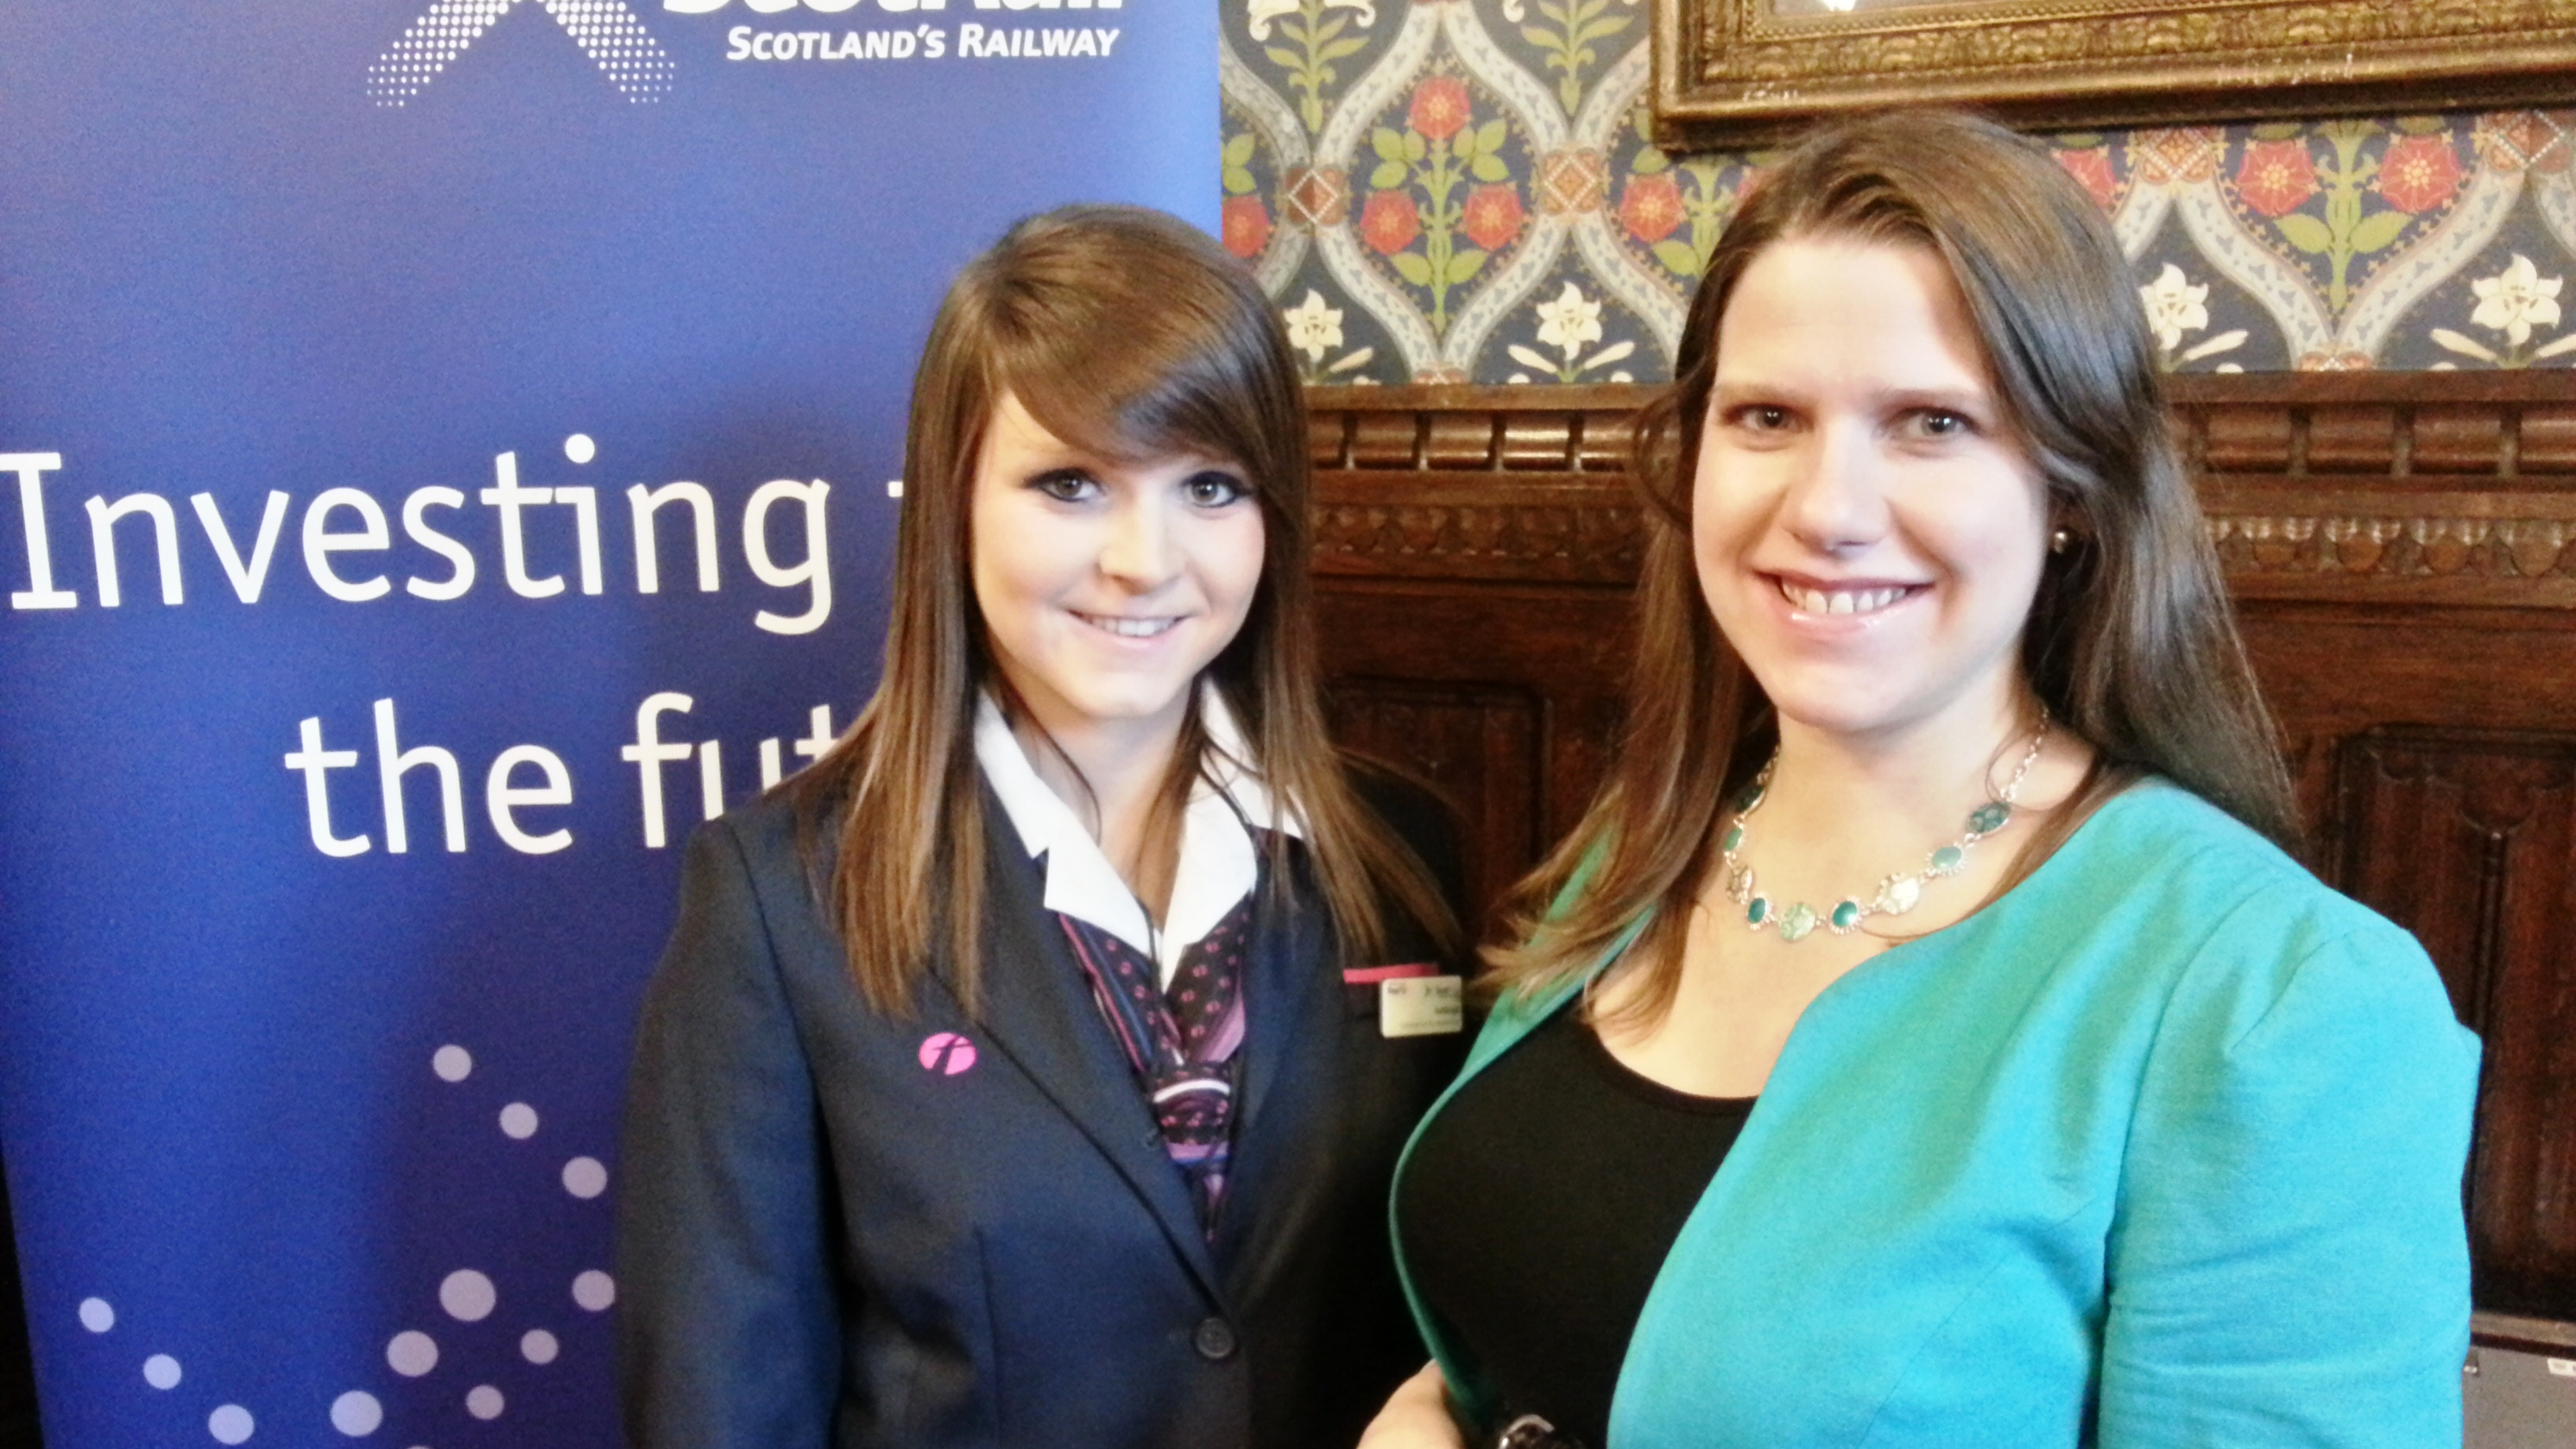 Jo_Swinson_MP_with_Ashleigh_Smart2.jpg